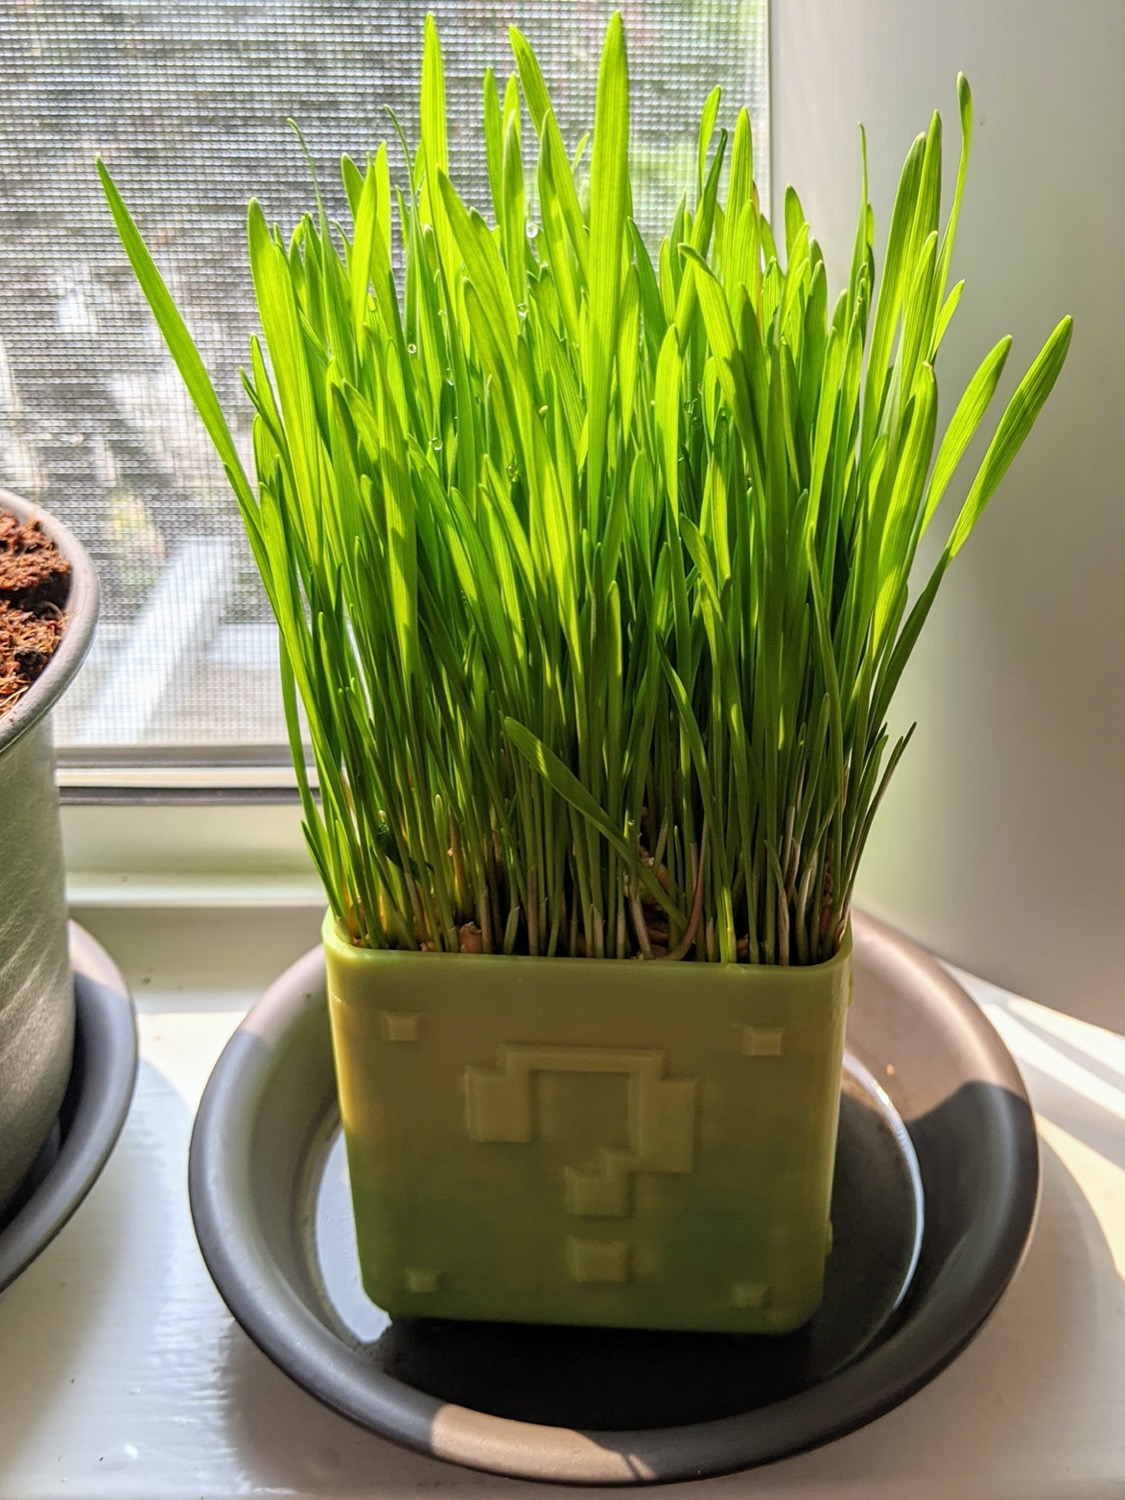 Wheatgrass 5 days after sowing